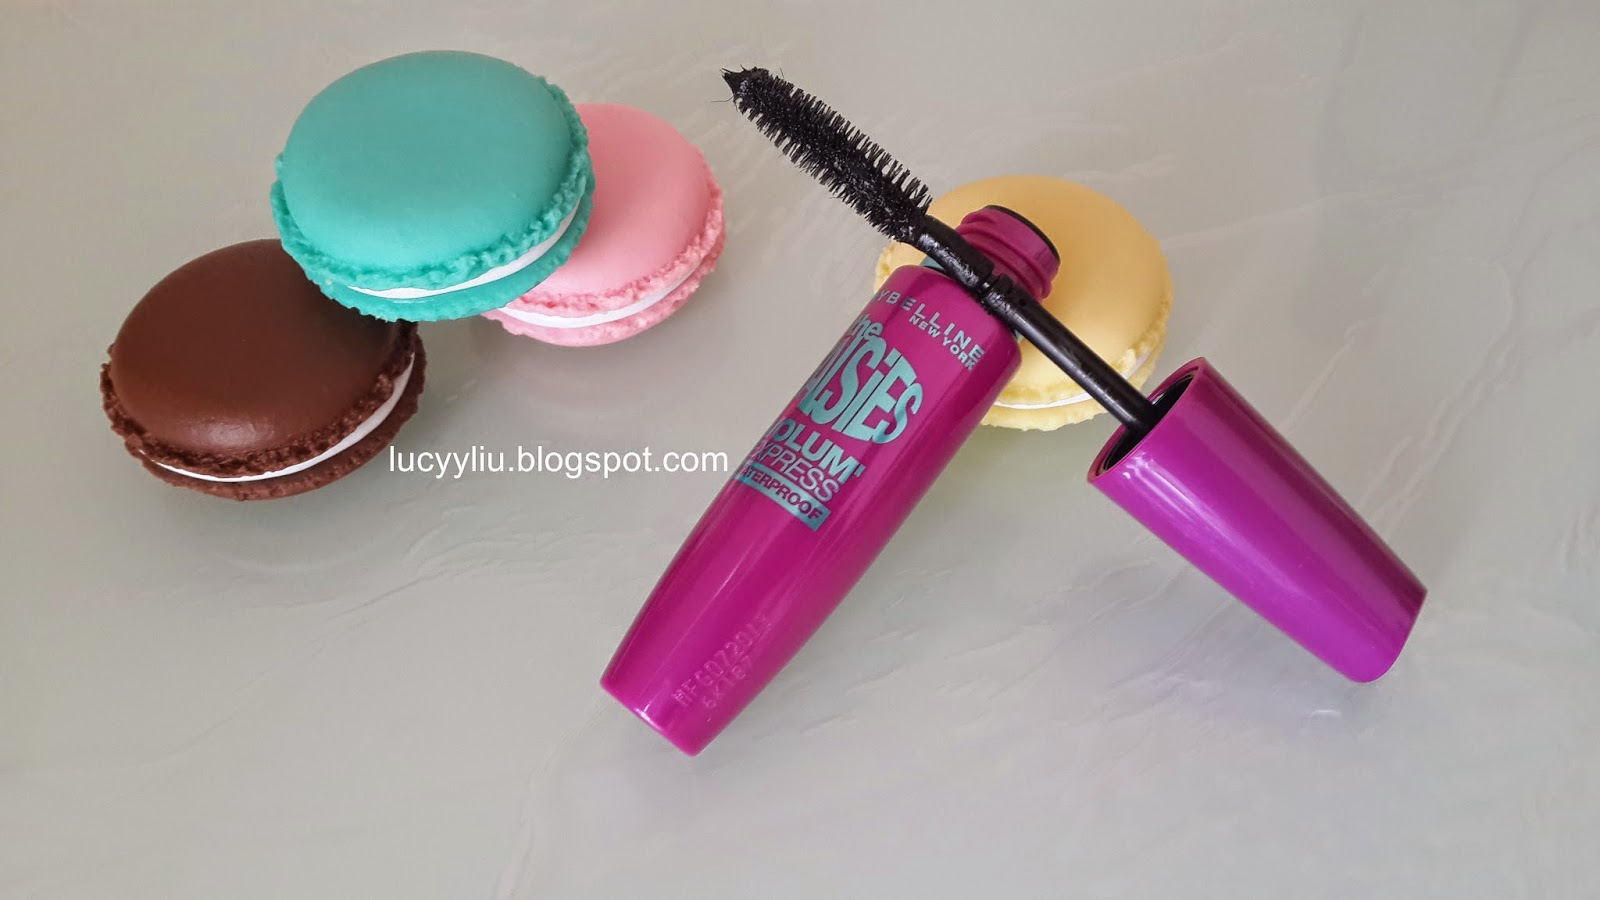 Maybelline The Falsies Volum' Express Waterproof review